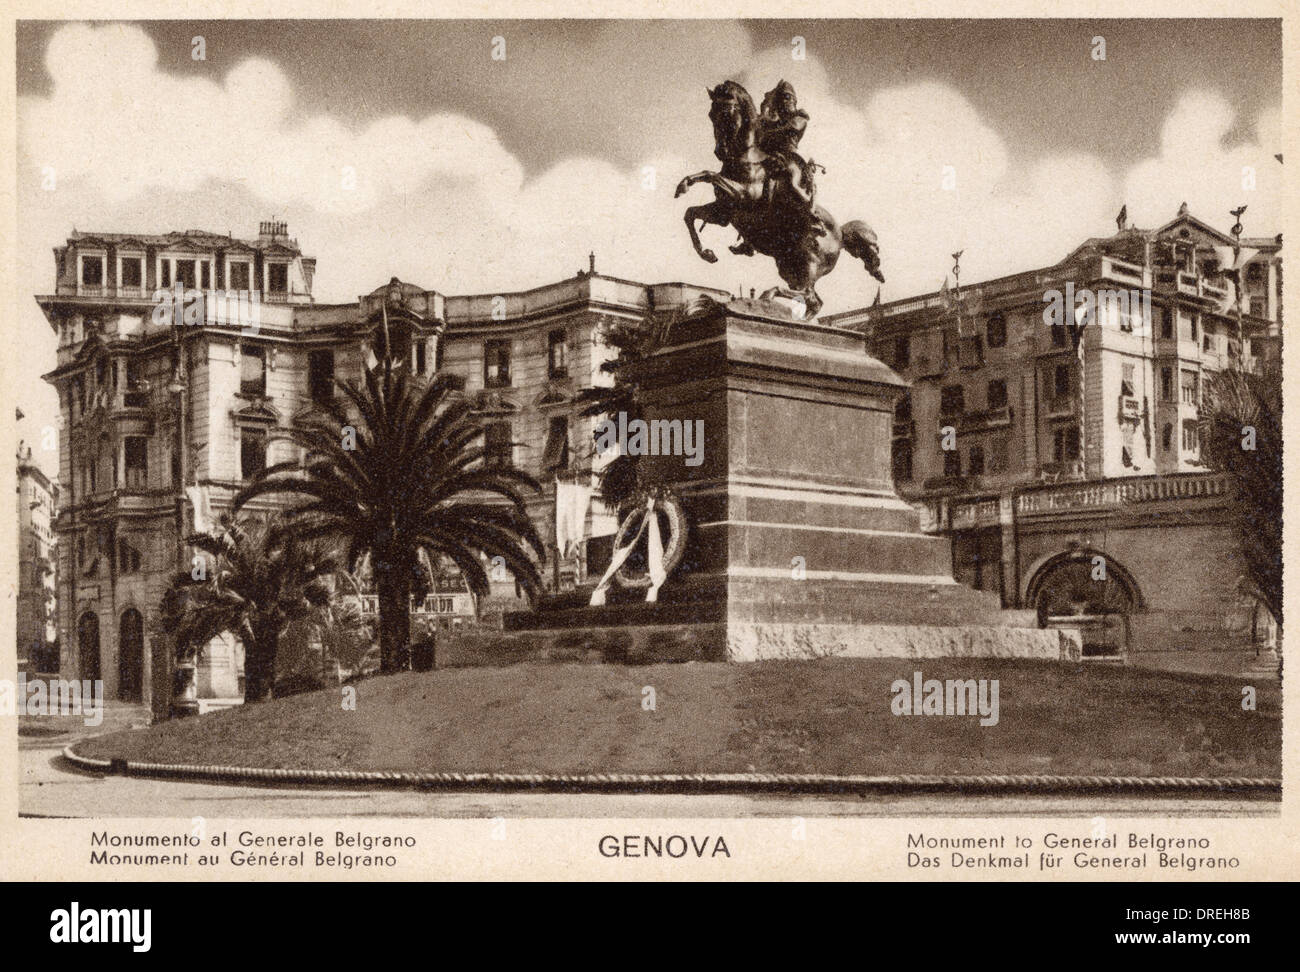 Genoa, Italy - Monument to General Belgrano - Stock Image